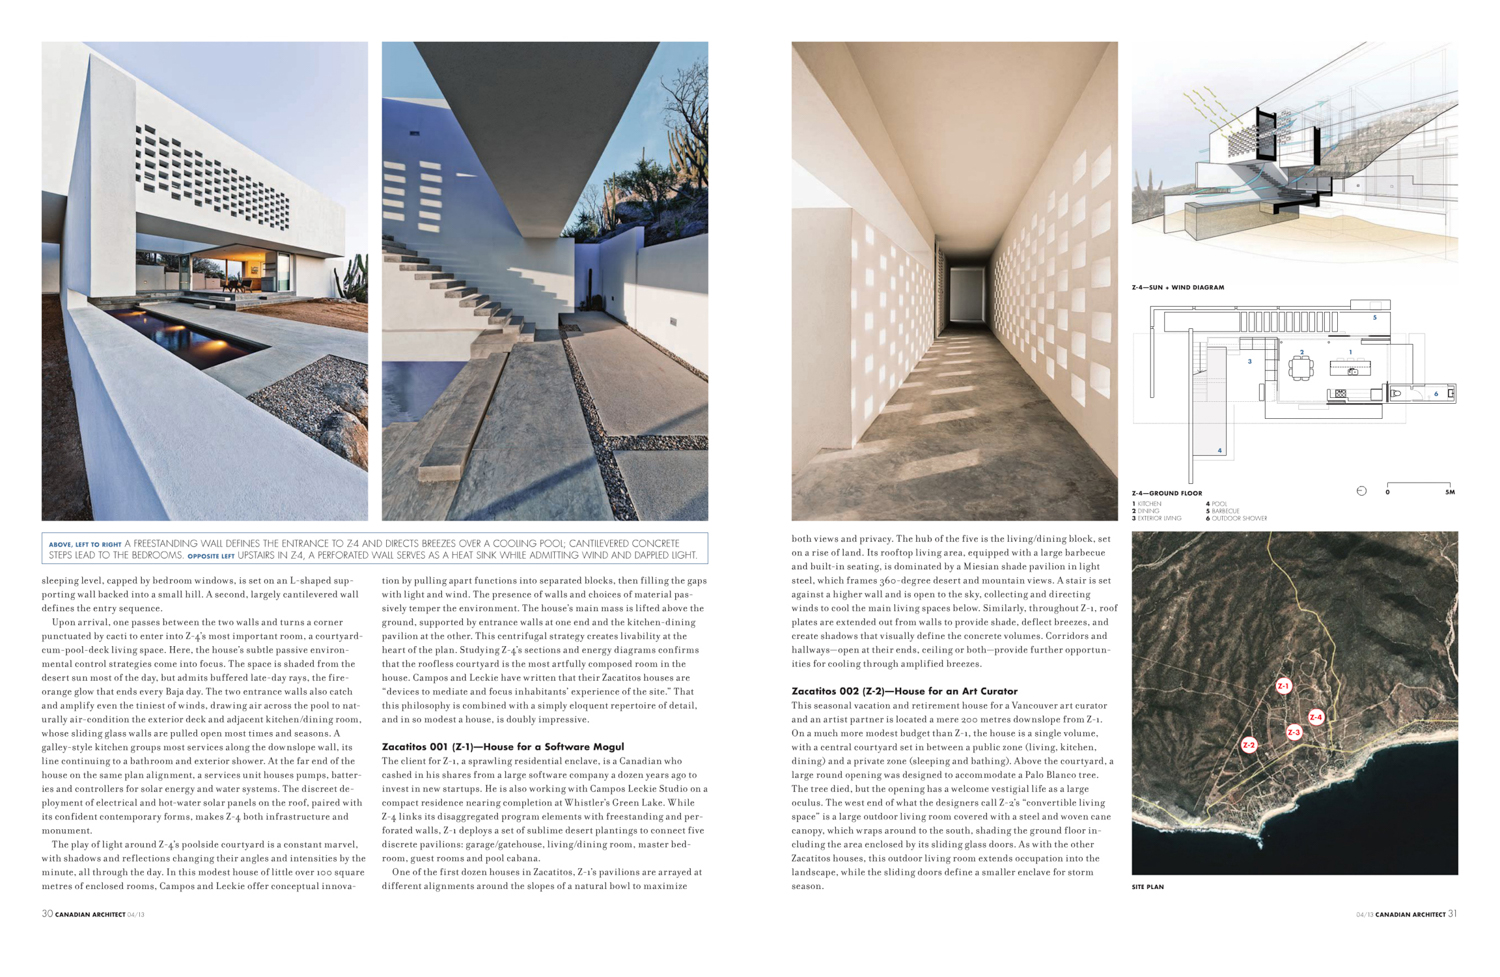 canadian architect - april 2013 - 2_web.jpg